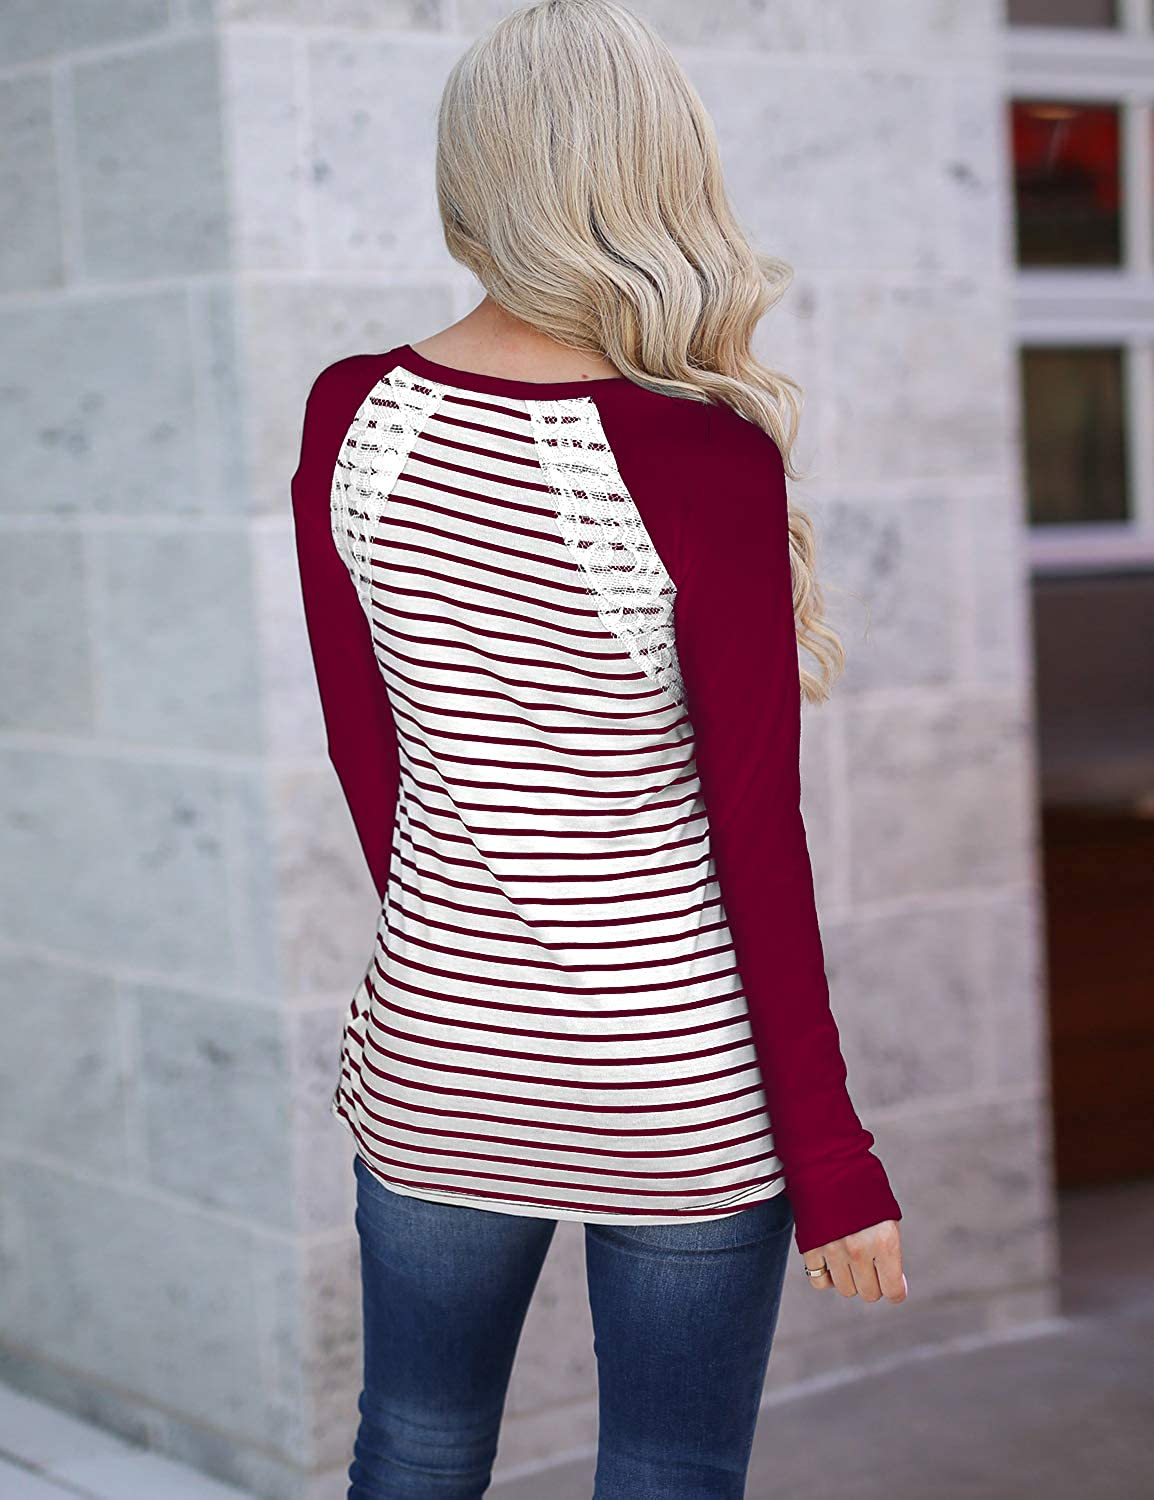 Blooming Jelly Womens Striped Top Raglan Long Sleeve T Shirt Lace Patchwork Button Up Tunic Ladies Jumpers